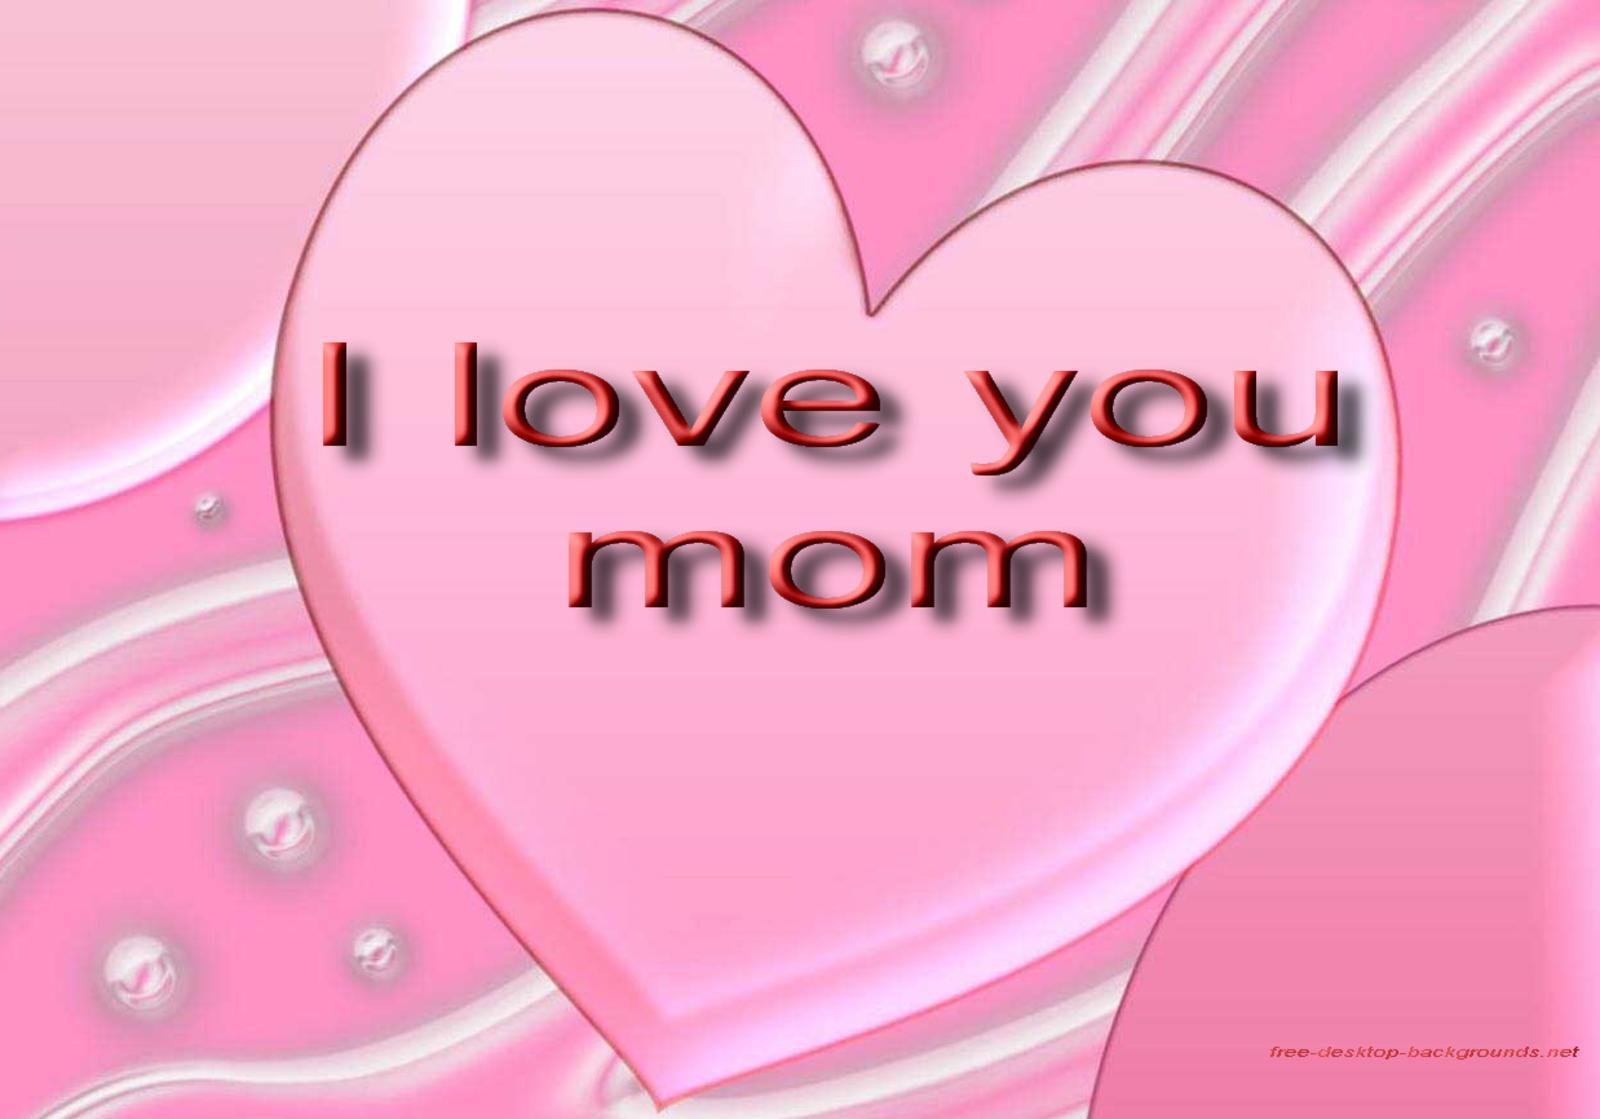 Wallpaper Love You Mom : I Love You Mom Mothers Day Wallpapers cool christian ...